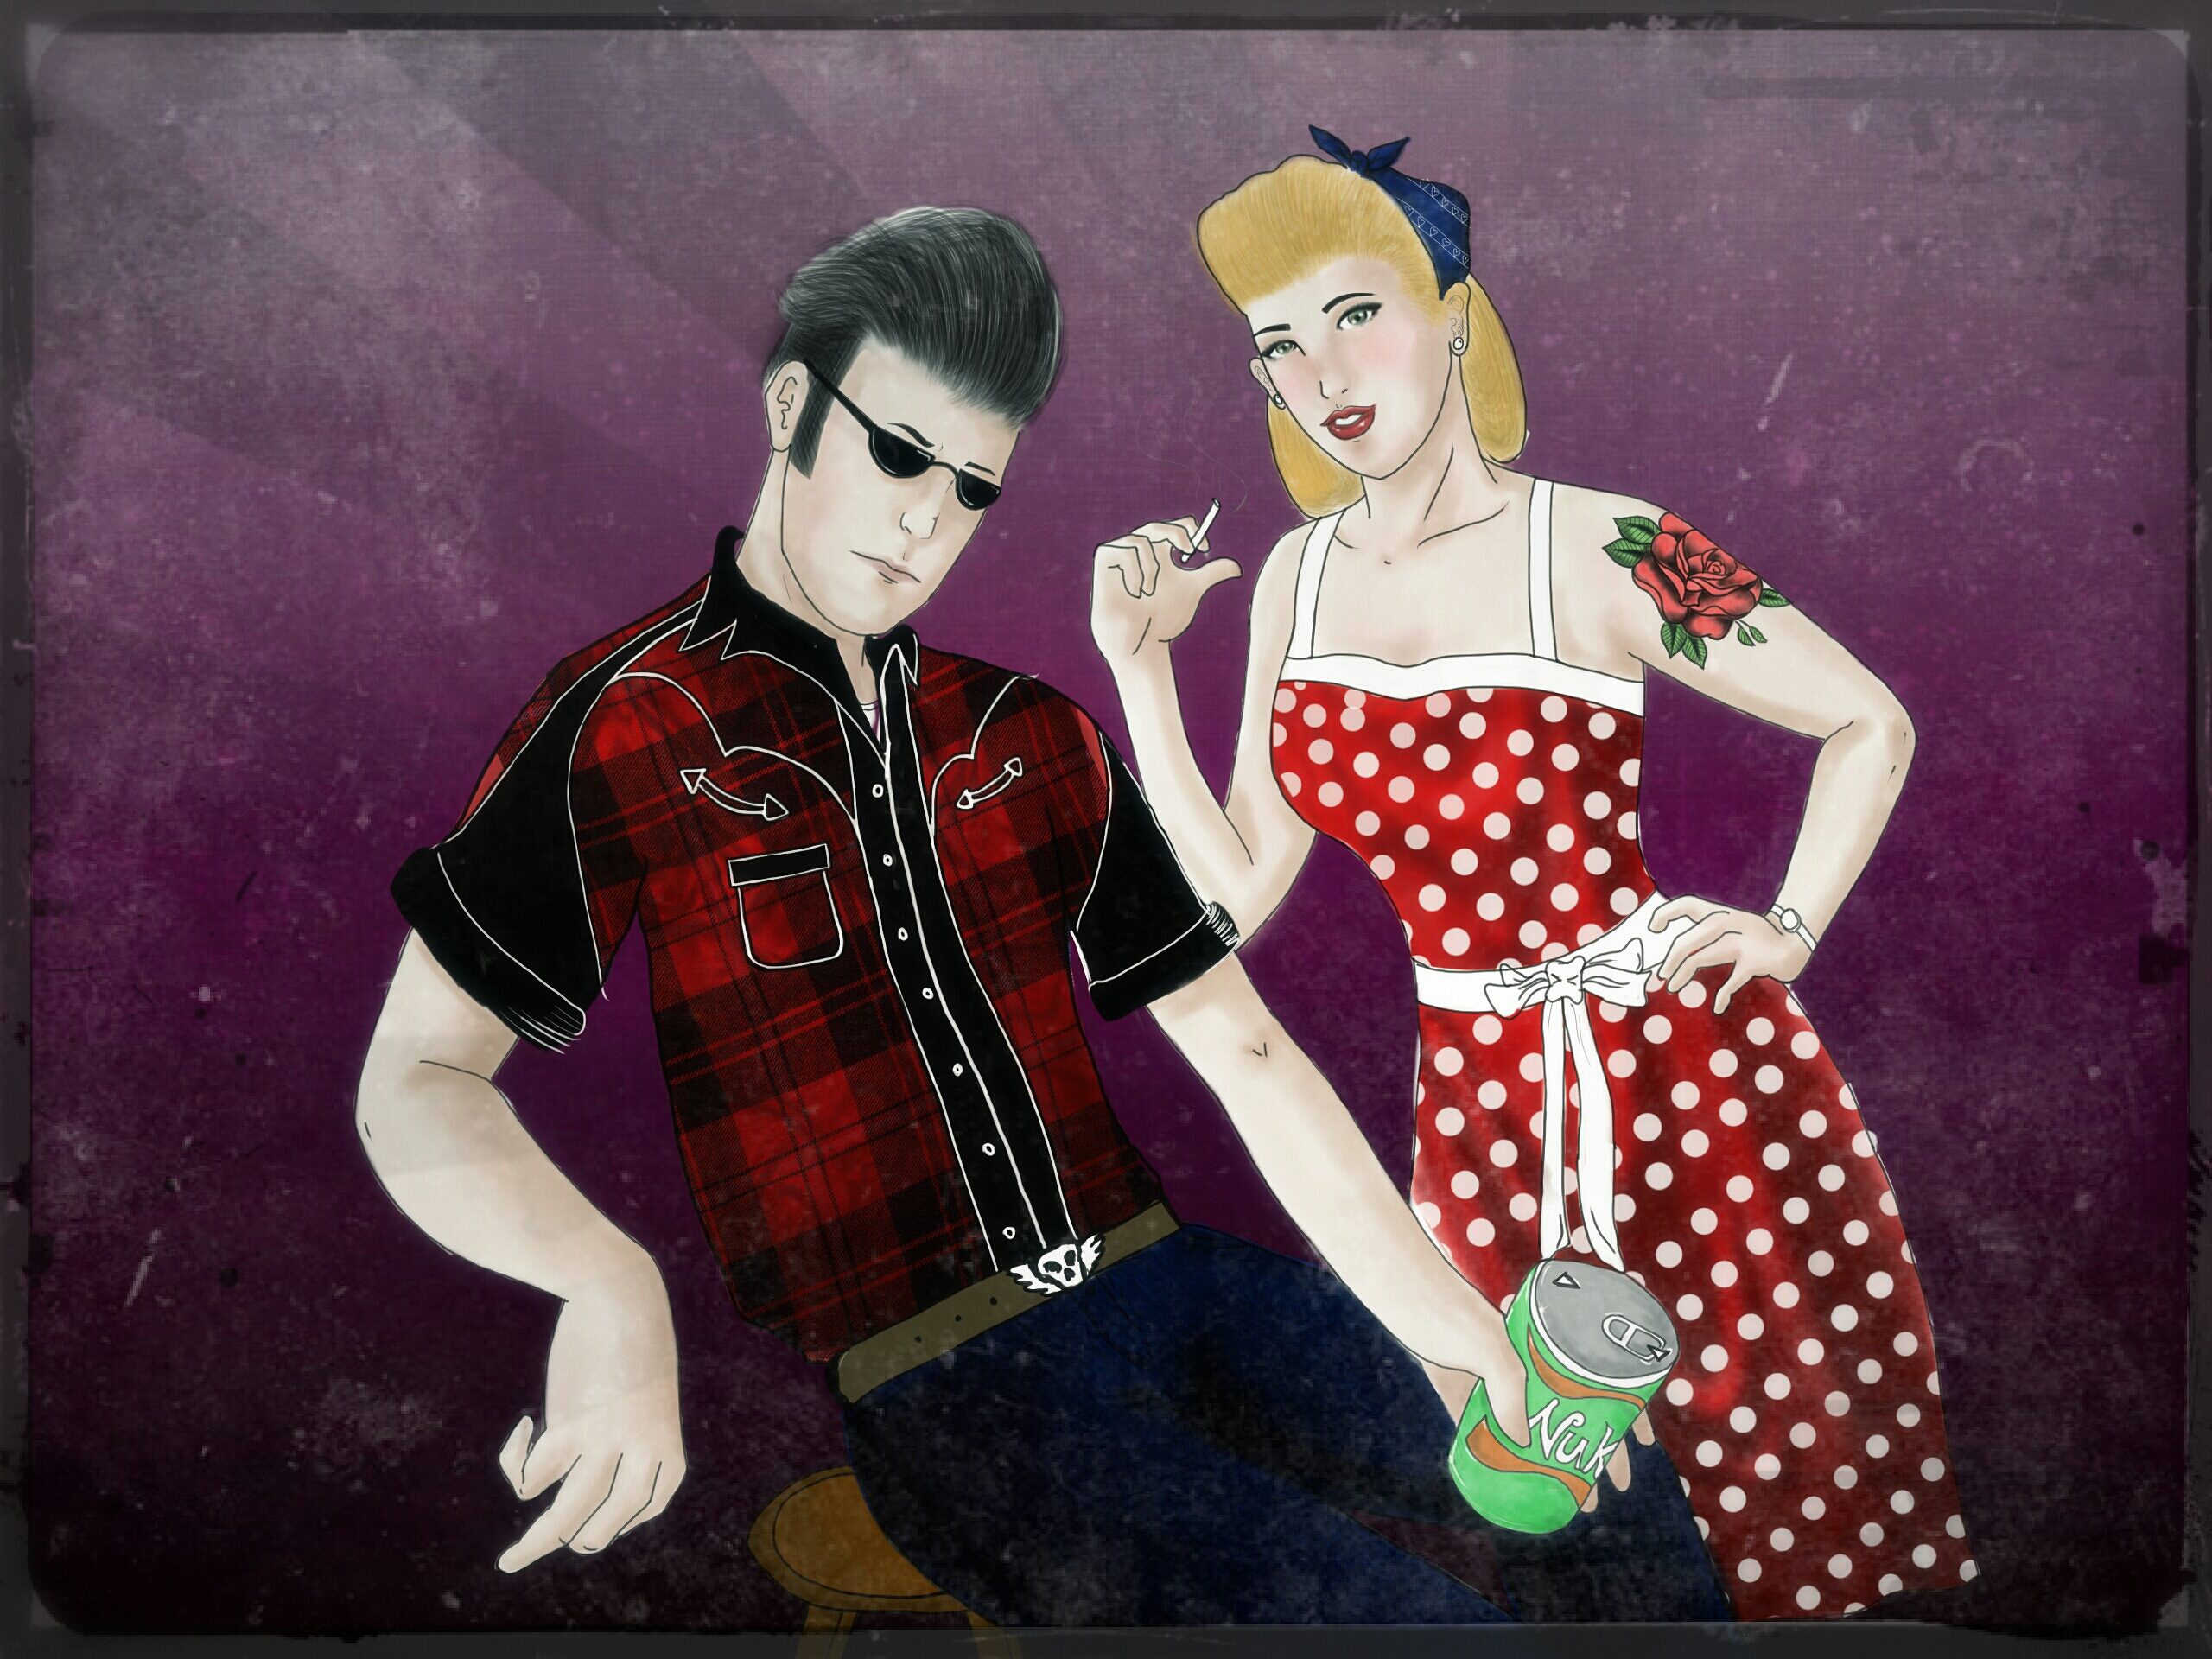 Rockabilly couple by camiloz182 on DeviantArt